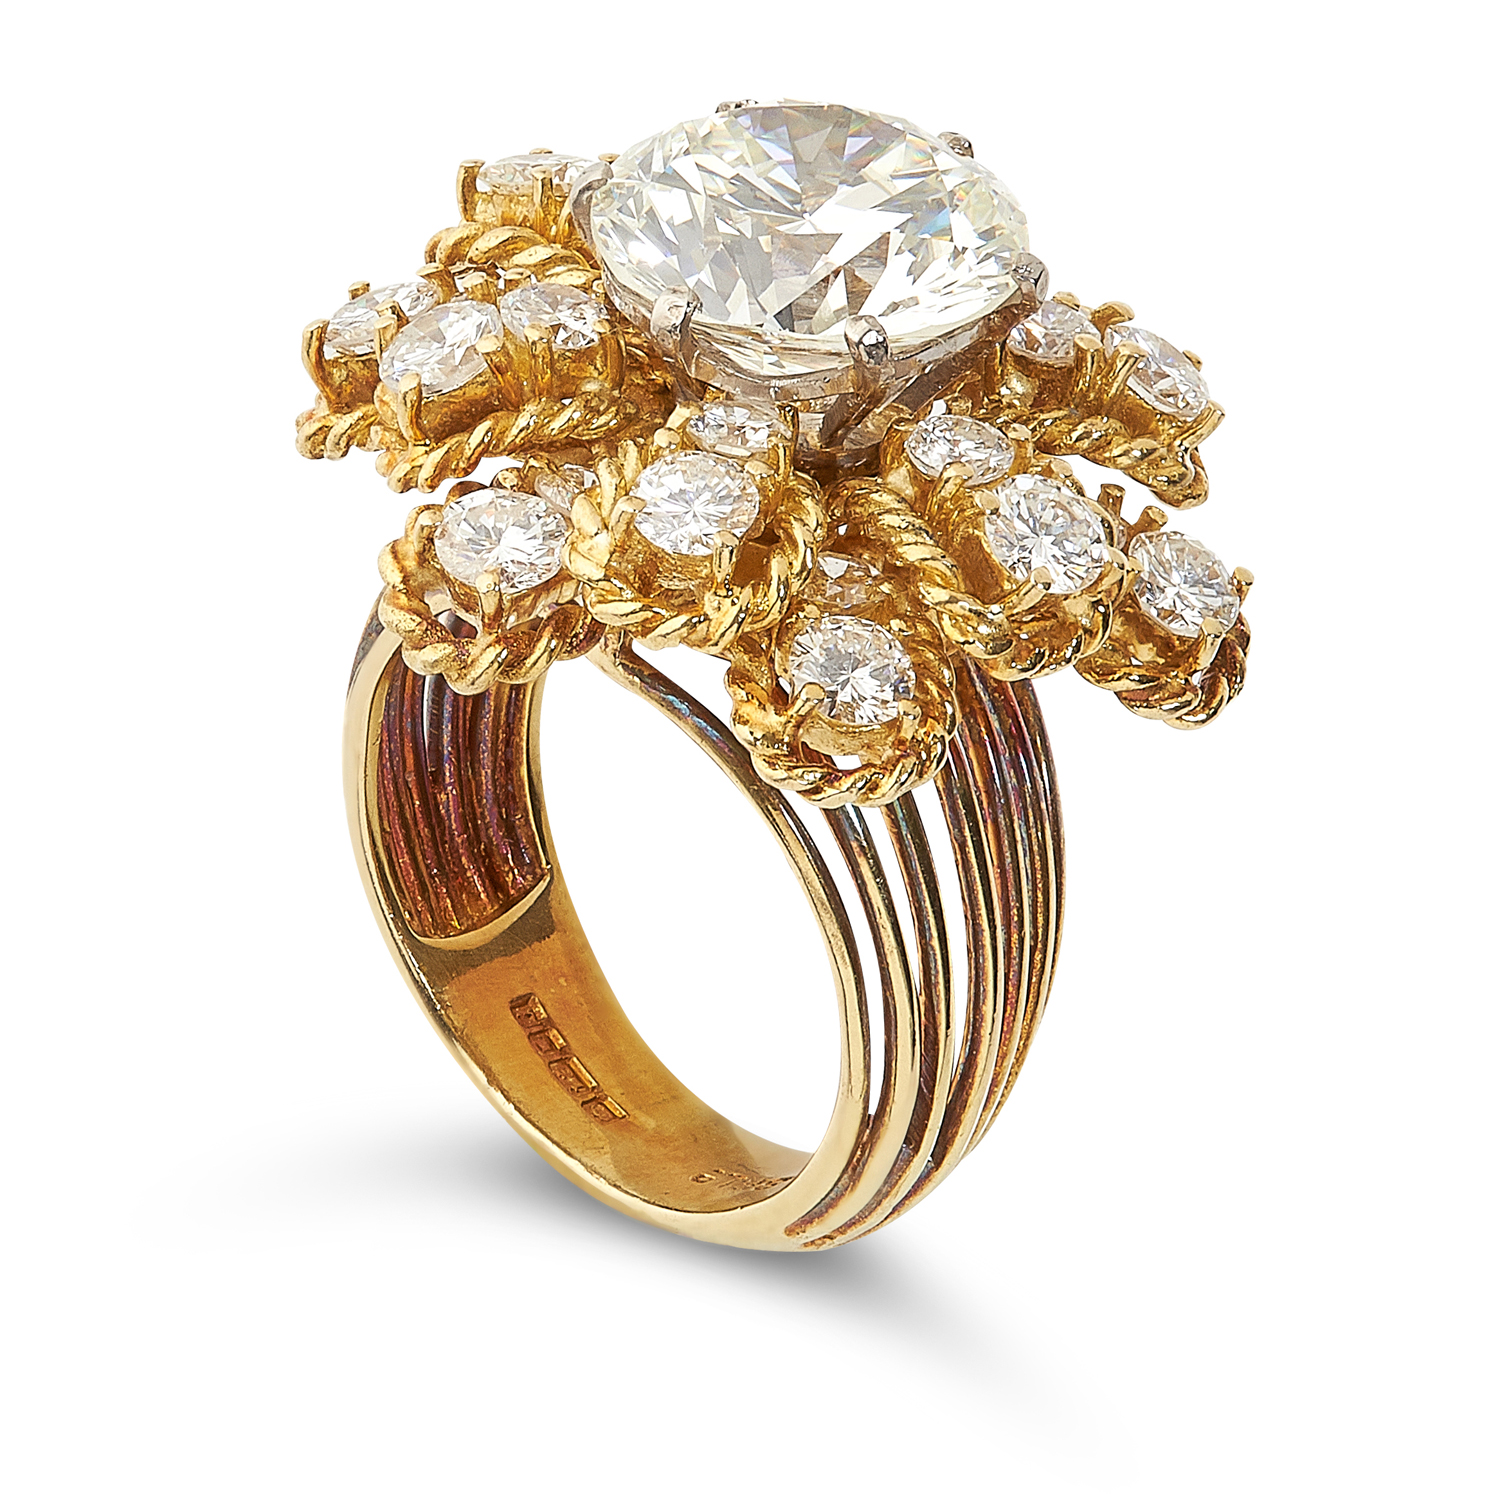 A VINTAGE 4.76 CARAT DIAMOND RING, BEN ROSENFELD 1964 in 18ct yellow gold, set with a central - Image 4 of 4